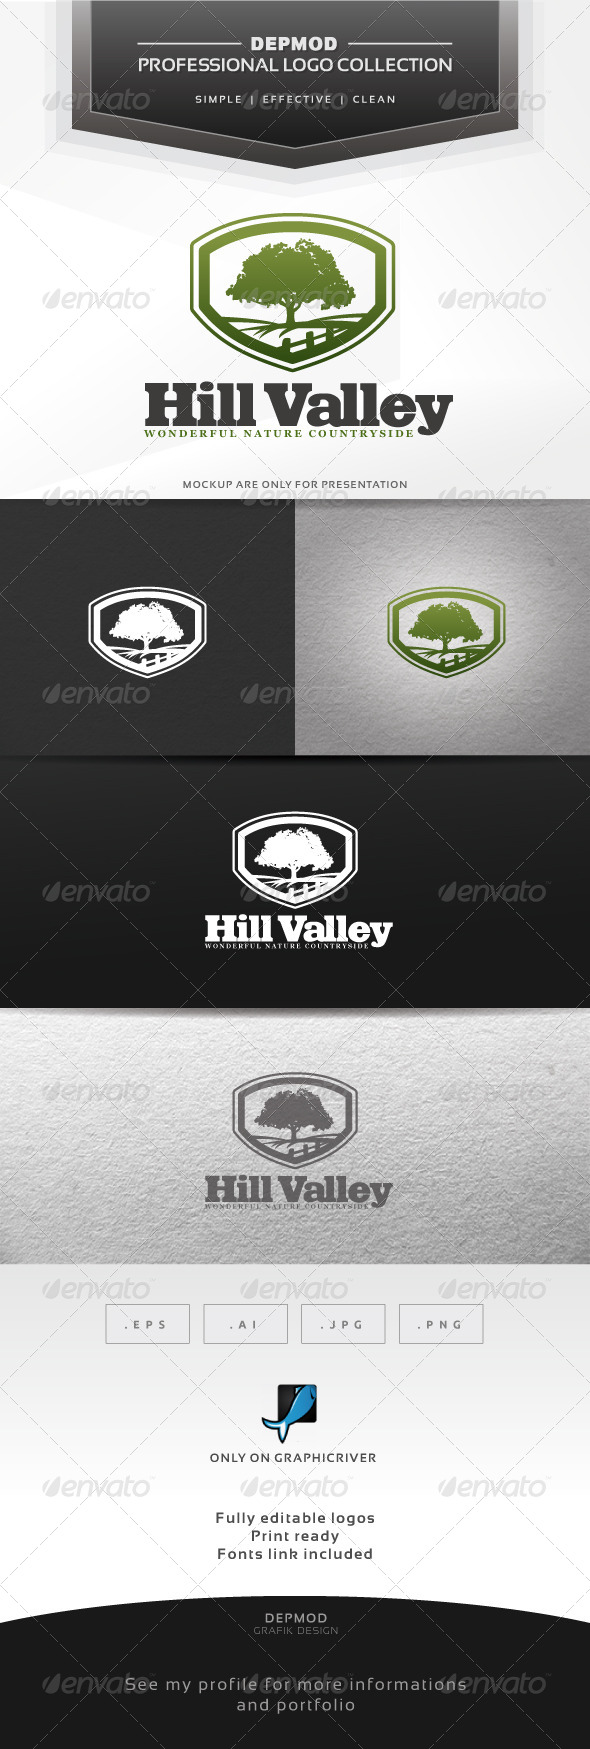 GraphicRiver Hill Valley Logo 6332576